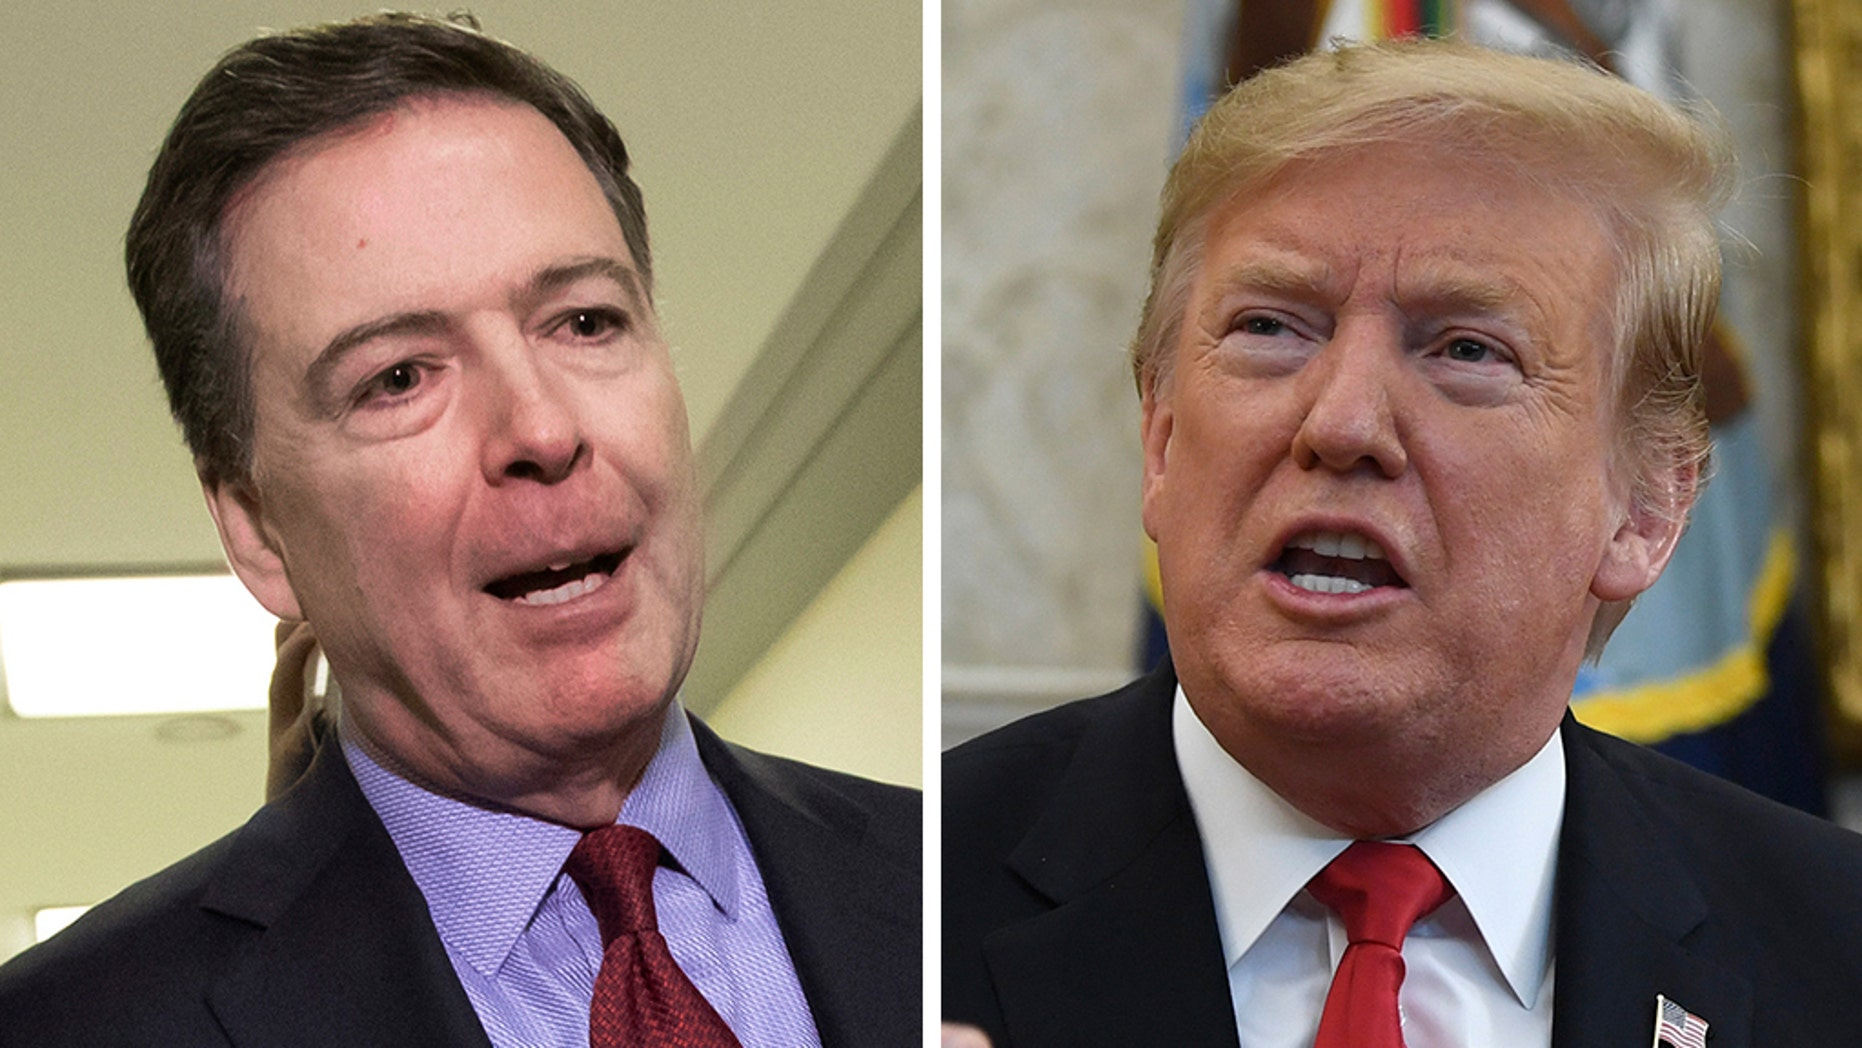 Former FBI Director James Comey said in an interview Wednesday that President Trump may have obstructed justice in his decision to fire him.